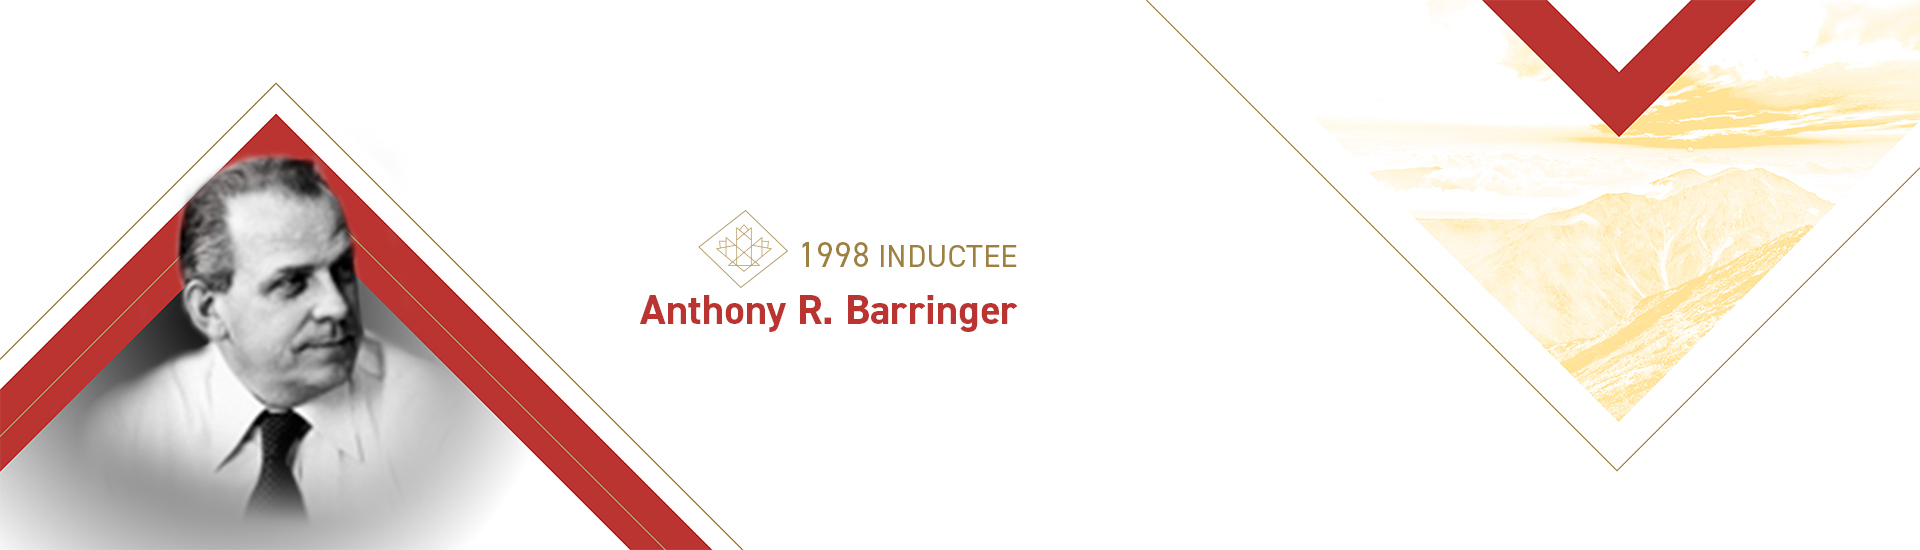 Anthony R. Barringer (1925 – 2009)